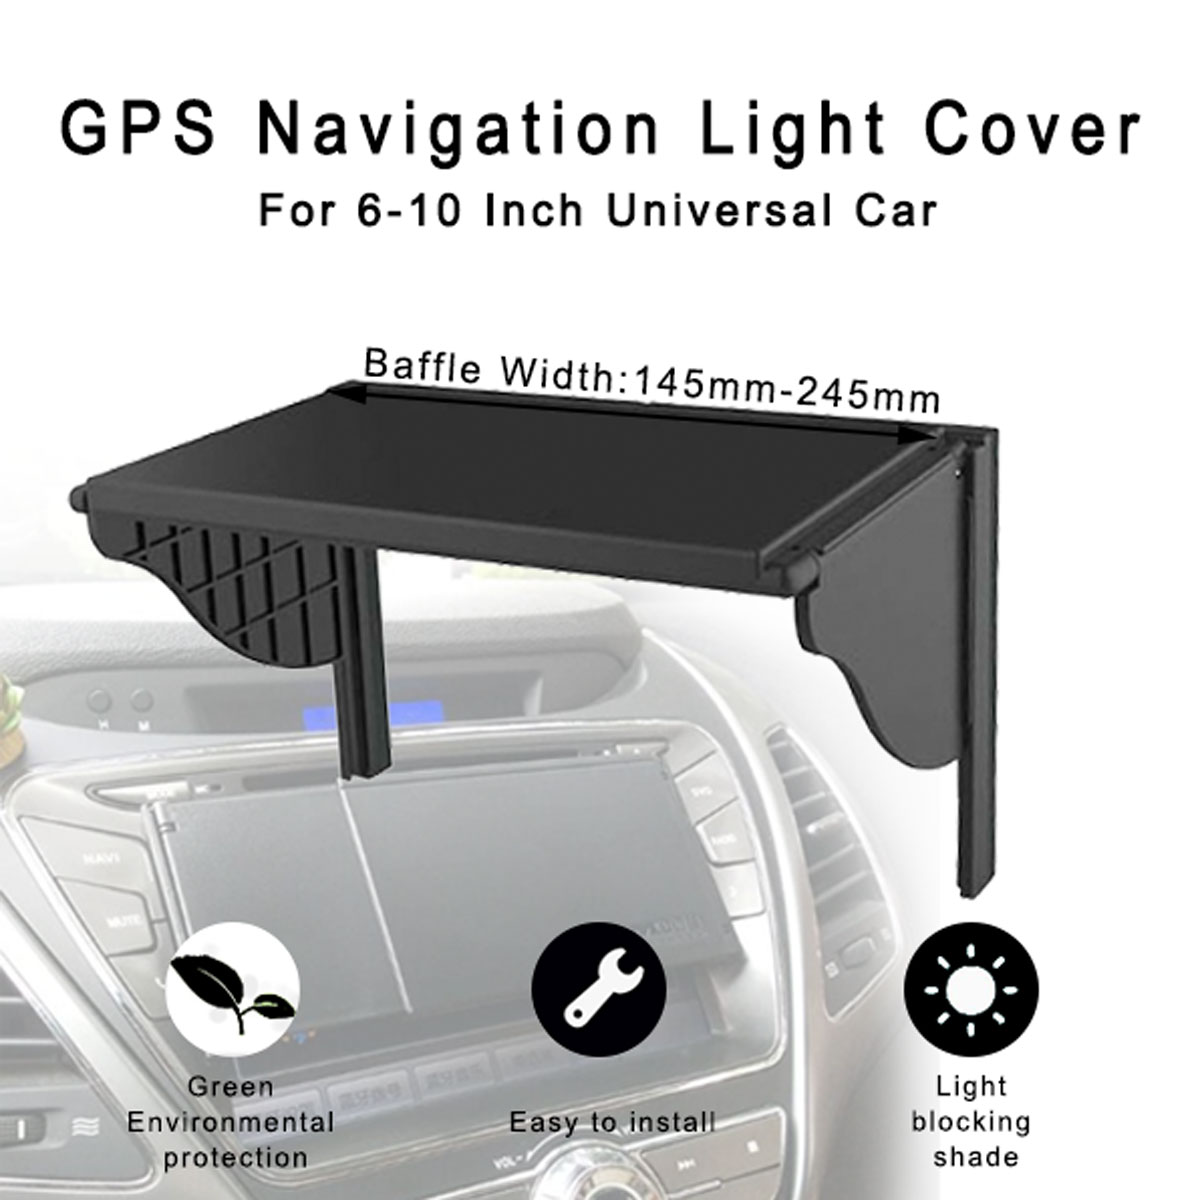 6-10 Inch Universal Car GPS Navigation Light Cover Barrier GPS Navigator Sun Visor Monitor Sunshade Hood Width 145mm-245mm